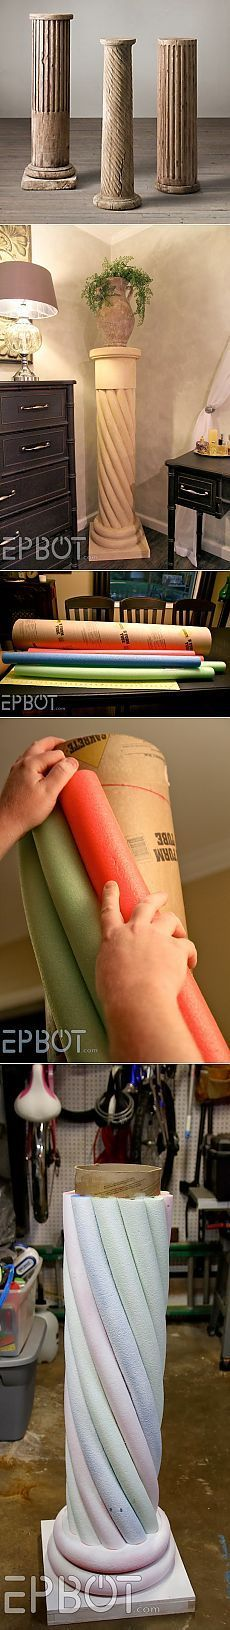 "EPBOT: Make Your Own ""Stone"" Decorative Column... With Pool Noodles! /Колонны под цветы:"